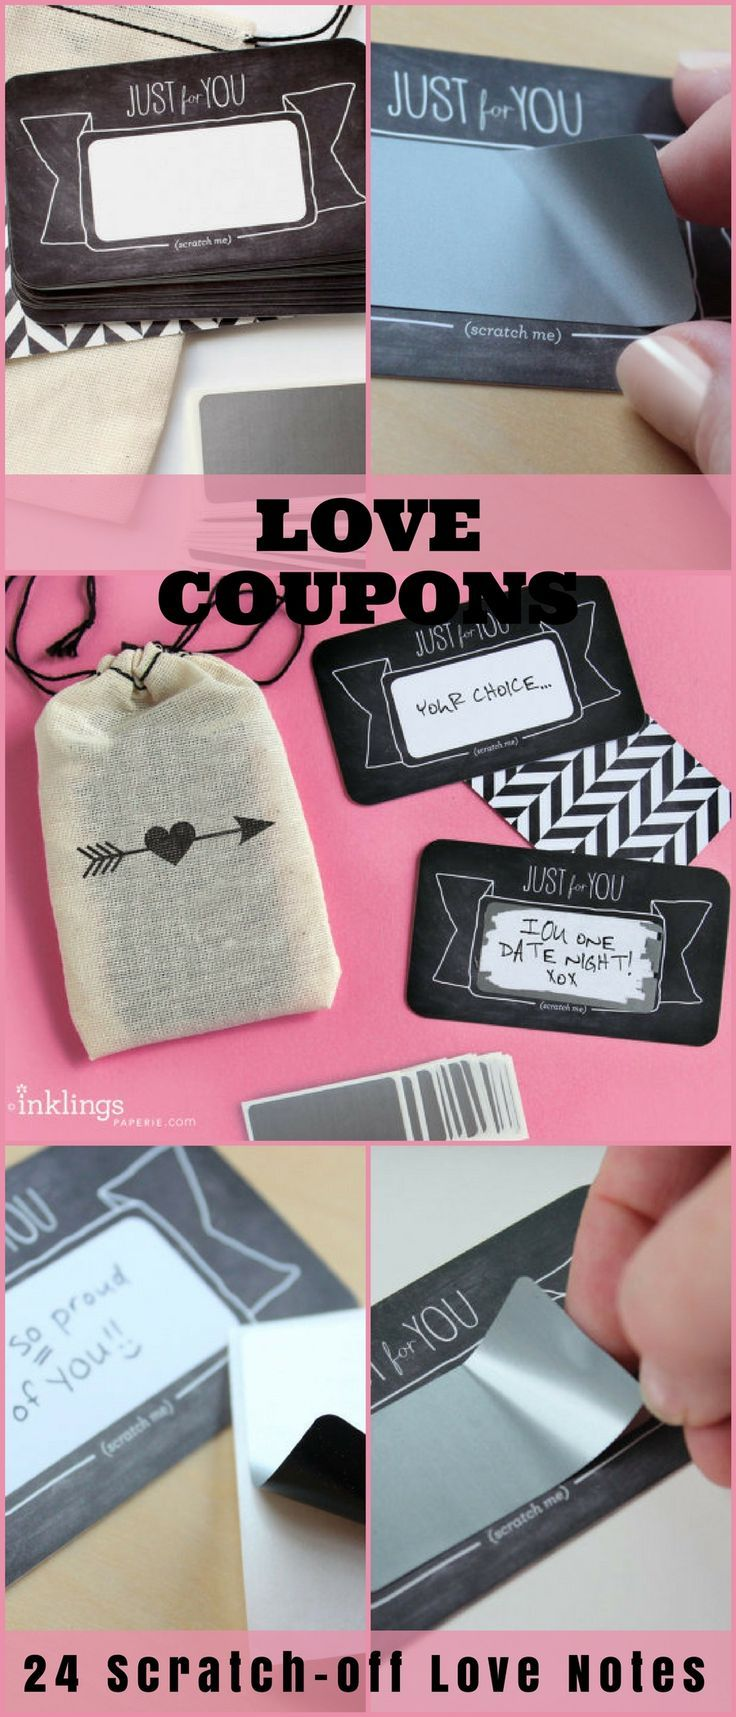 24 Scratch-off Love Notes or Valentine's Day Love Coupons //Mini Cotton Drawstring Bag, love coupons, DIY anniversary or valentines day gift #ad